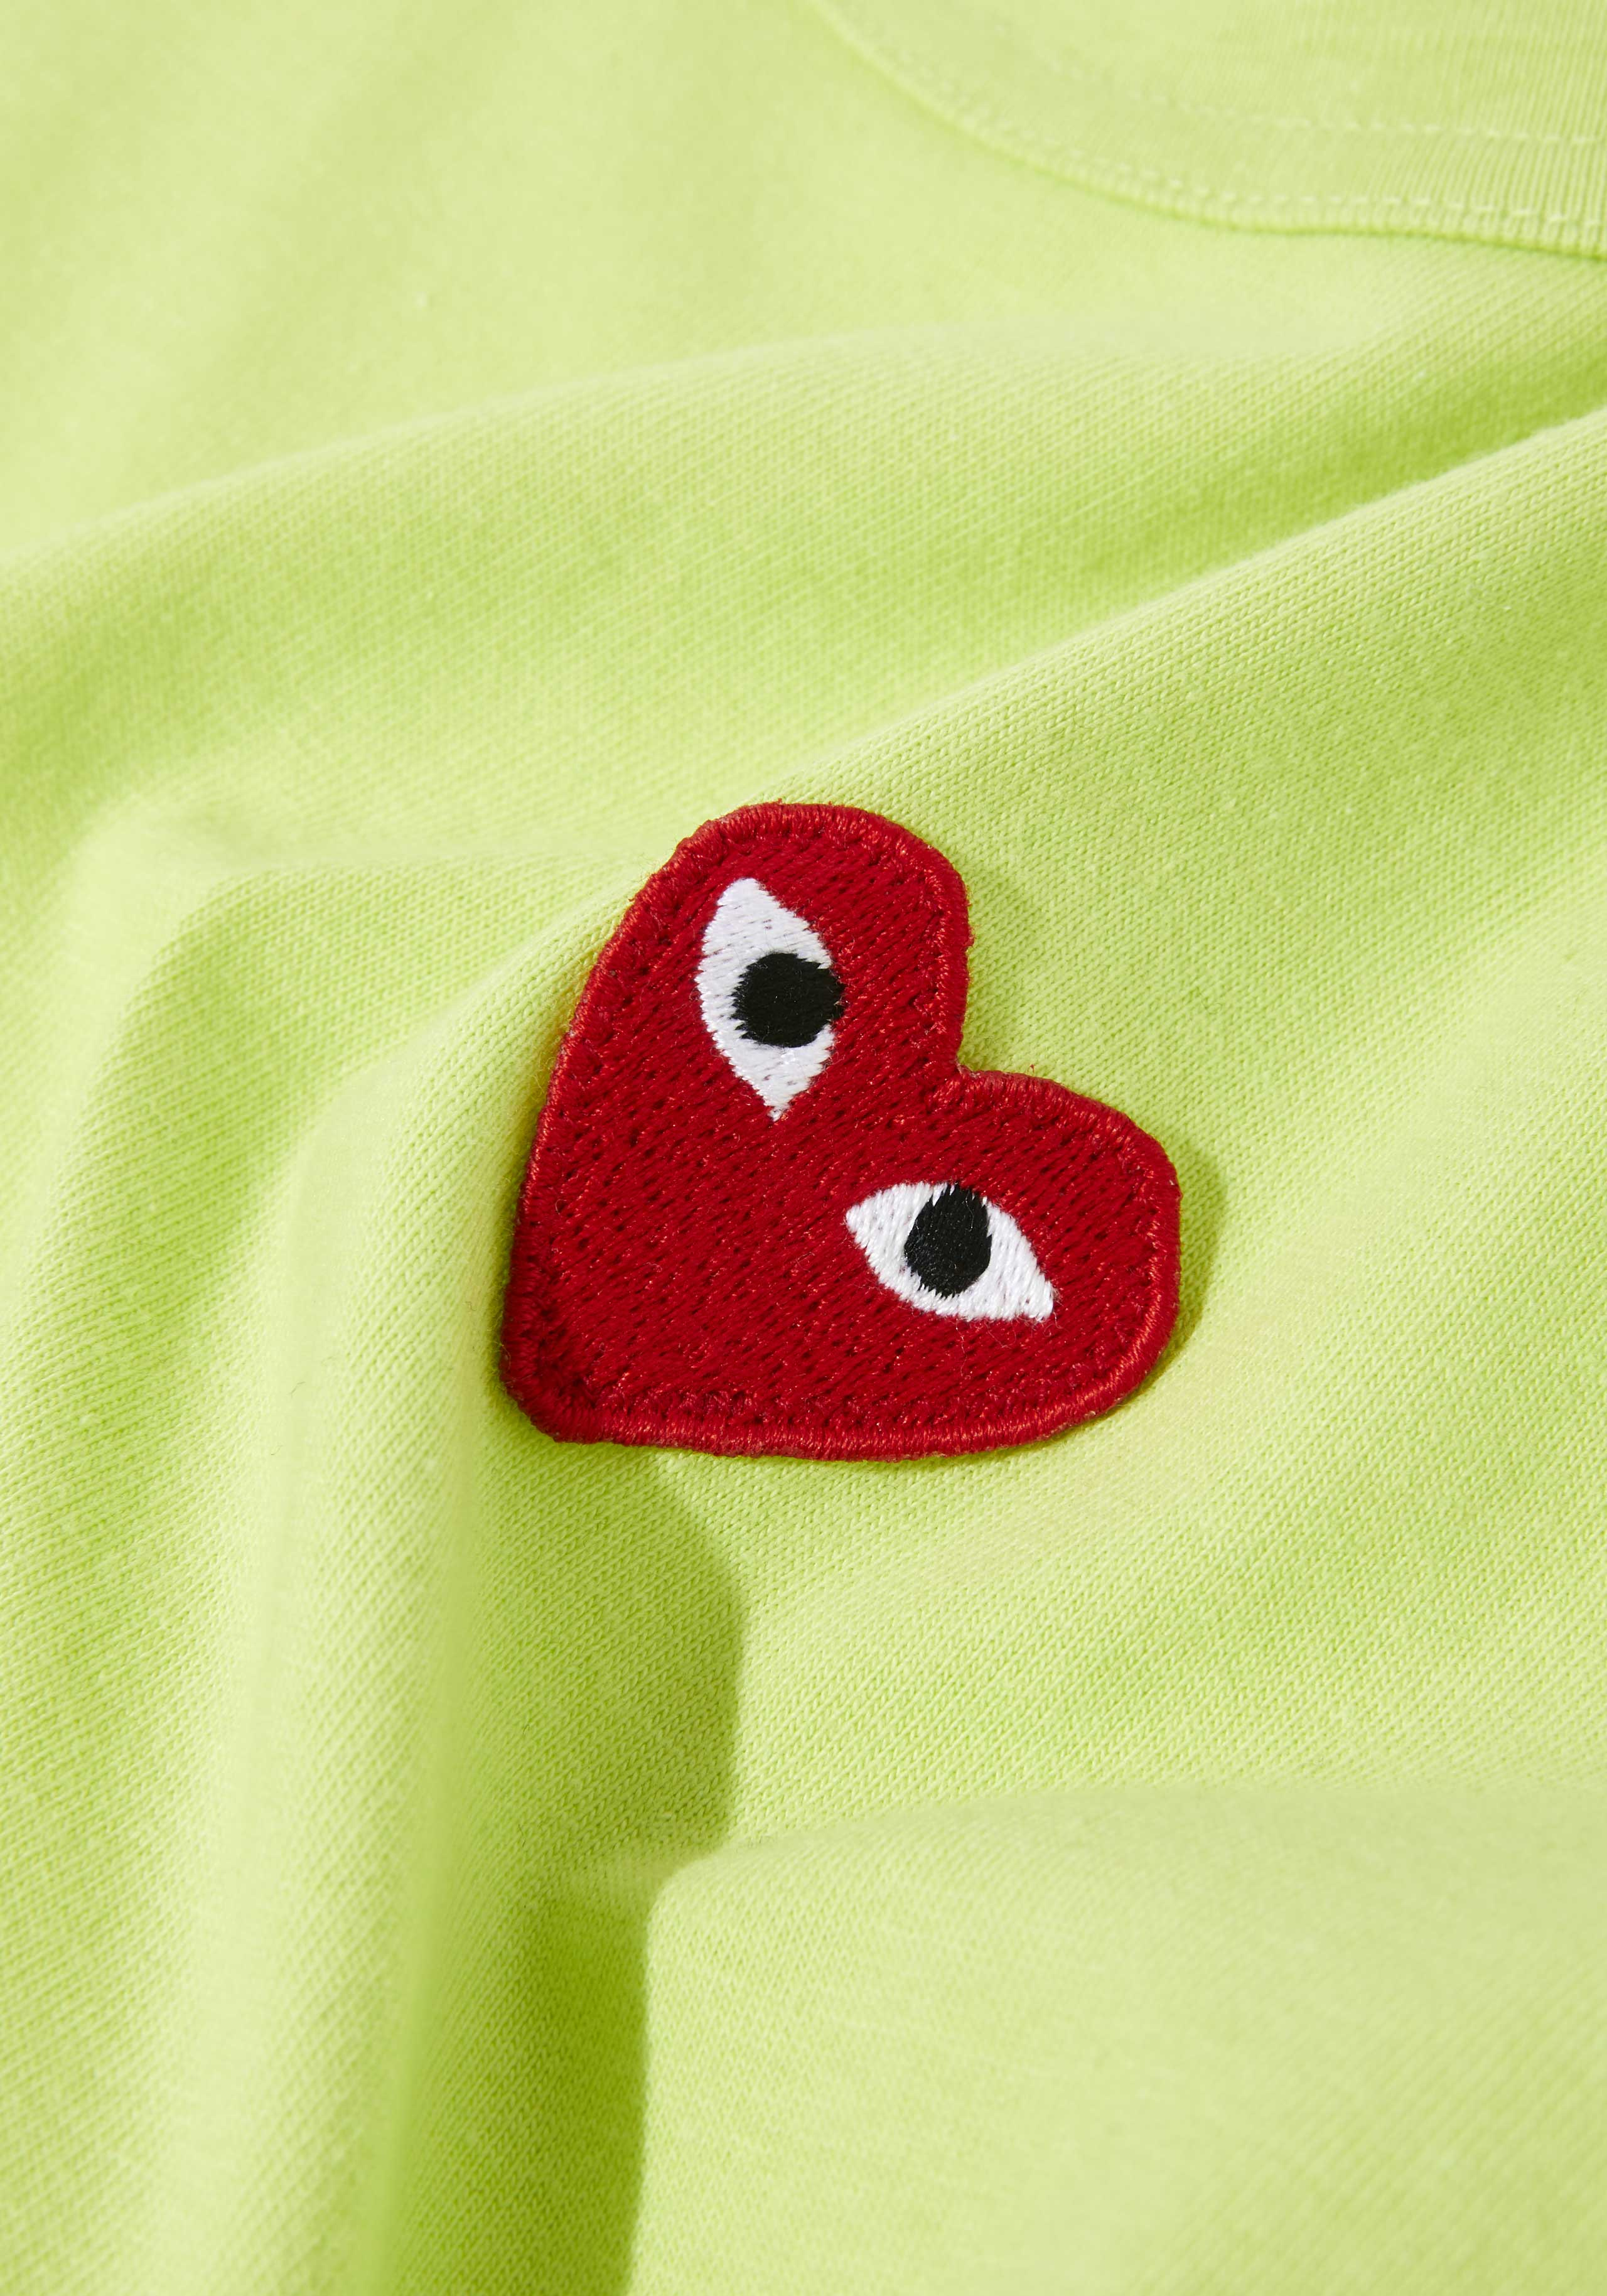 comme des garcons bright red heart tee 5